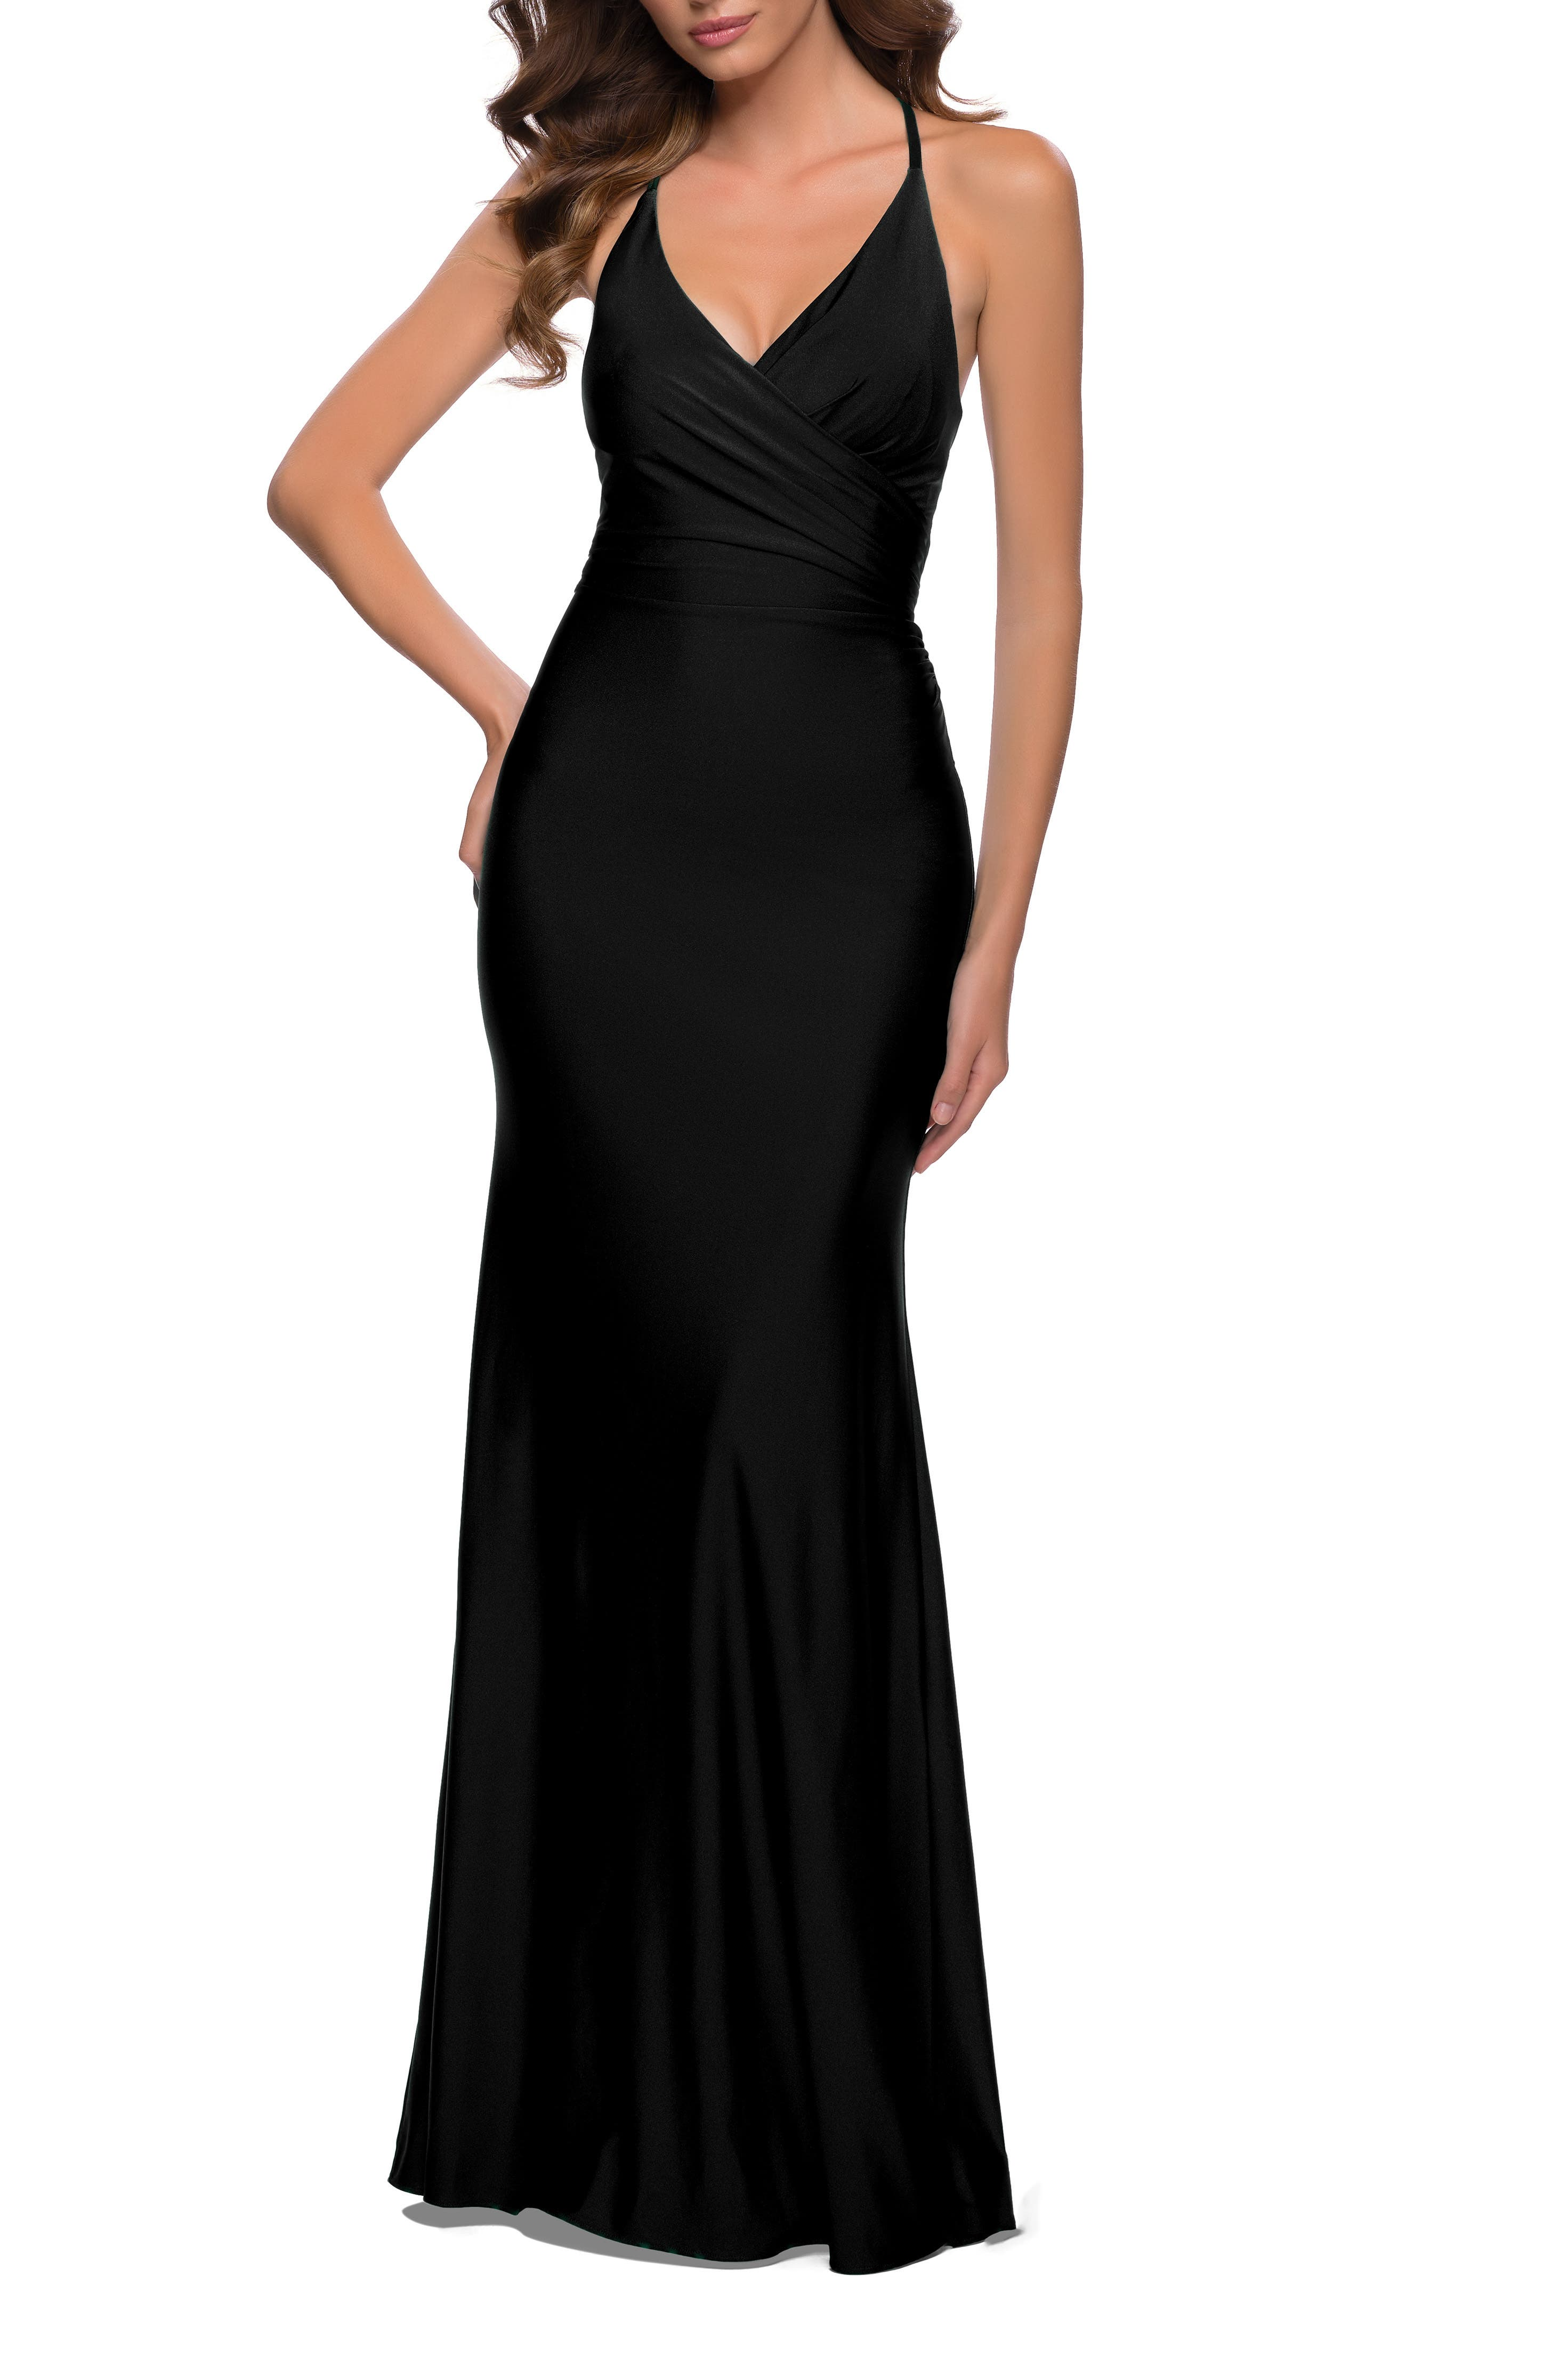 Alluring details grace every inch of this curve-skimming gown, from the gracefully wrapped front to the low-dipped strappy back. Style Name: La Femme Wrap Front Strappy Back Jersey Gown. Style Number: 6155868. Available in stores.